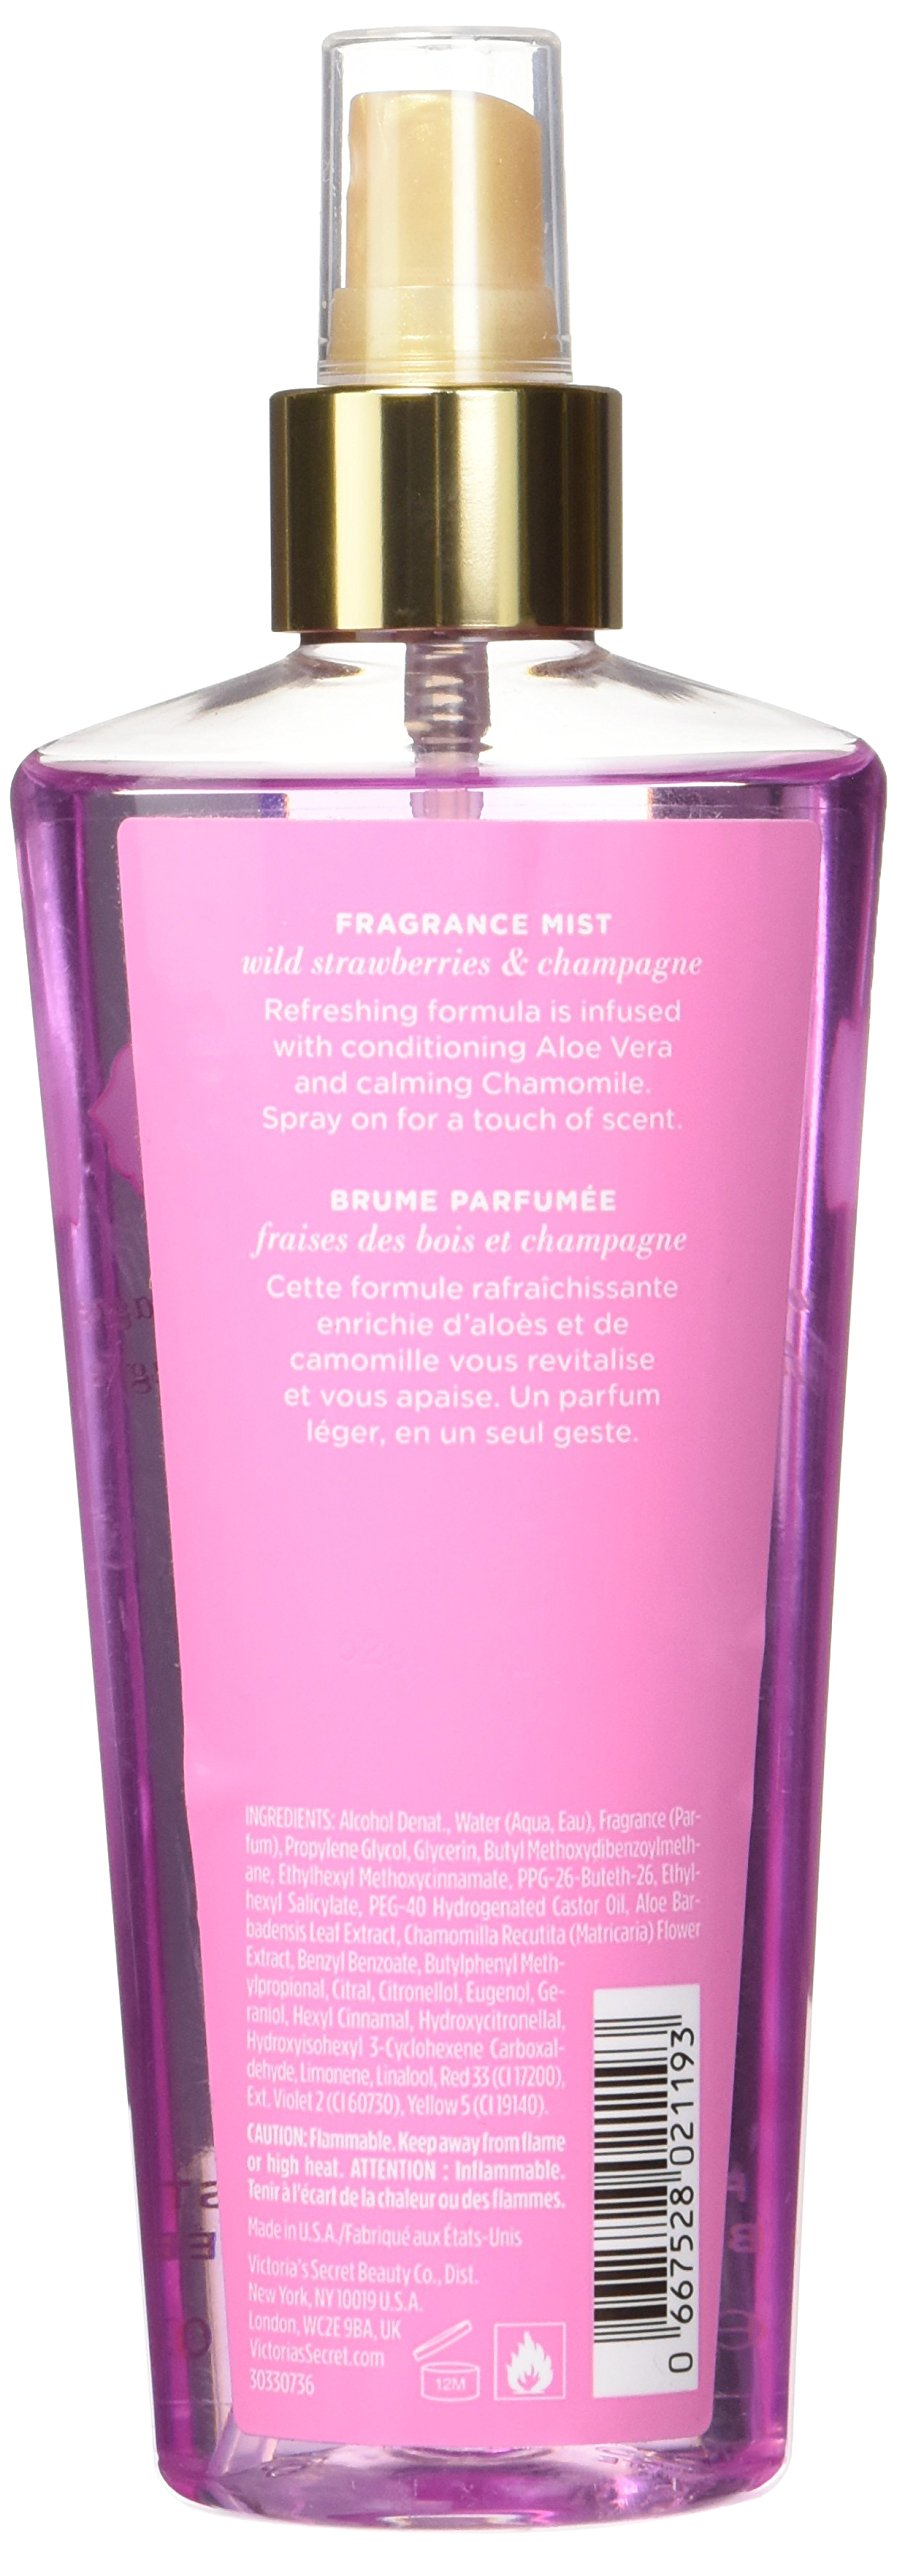 Victoria's Secret Fragrance Spray, Strawberries/Champagne, 8.4 Ounce